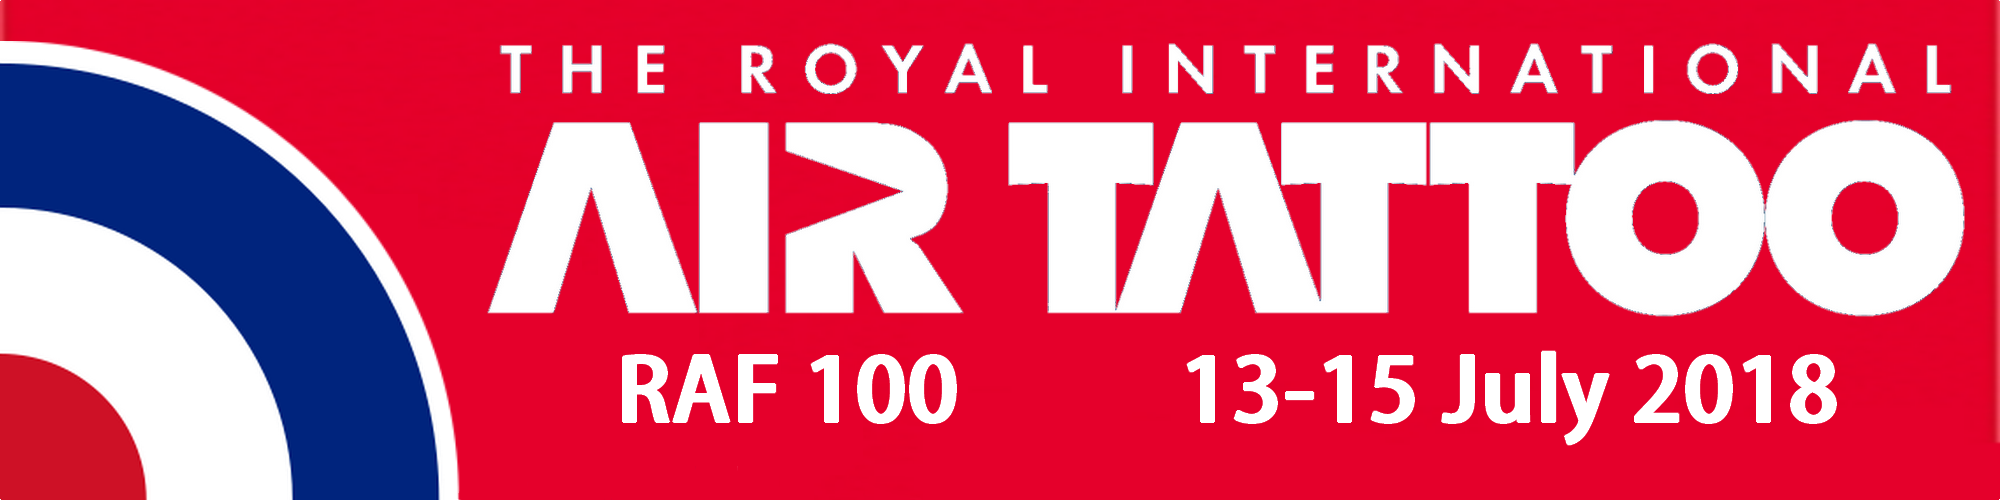 RAF 100th Anniversary , RIAT 2018 , airtattoo , CF-18 Hornet Canada , meeting aerien 2018 ,F-35 lightning ii , Display Team 2018 airshow 2018 , July 13-15 , Royal International Air Tattoo 2018 , spotter day 2018 , aircraft , fairford , Royal International Air Tattoo (RIAT) 2018 , Angleterre , UK , Manifestation Aeriennes 2018 - RAF100 , riat18 #riat2018